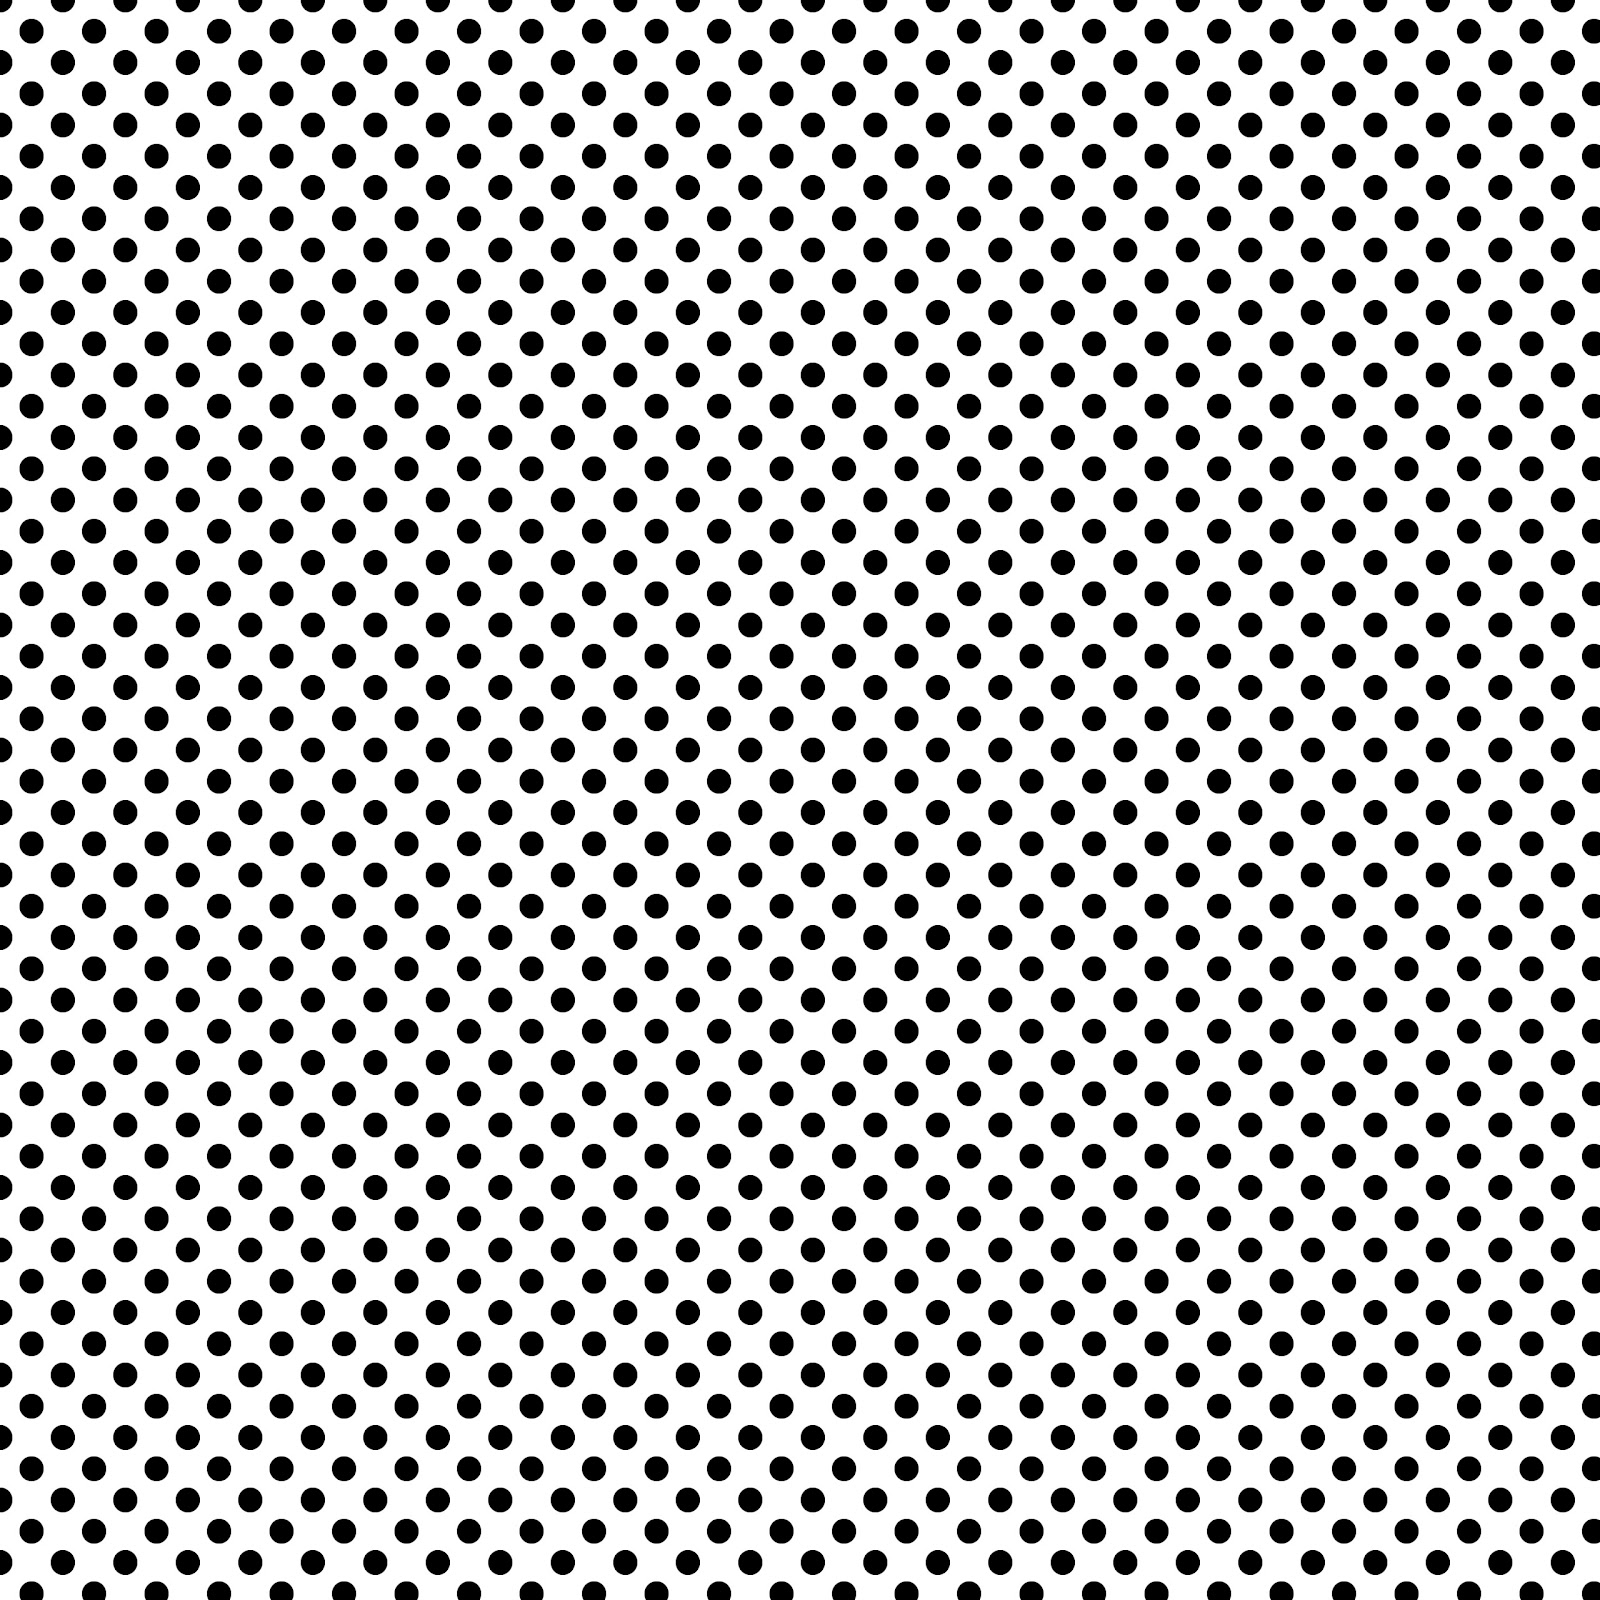 Polka Dot Black And White Wallpaper | PicsWallpaper.com